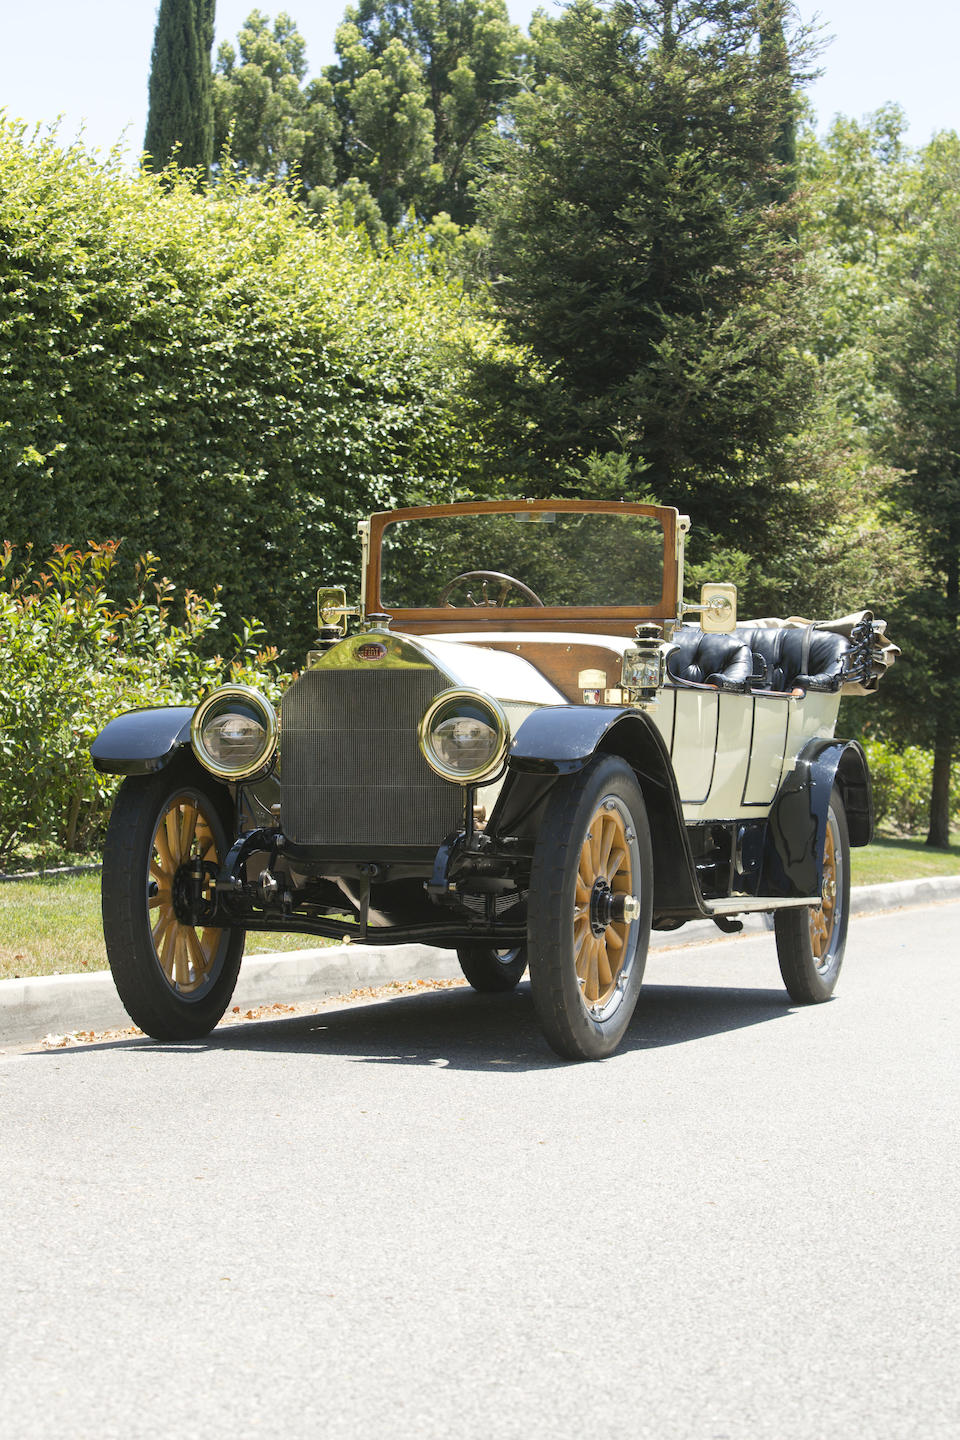 c.1912 FIAT MODEL 56 50HP 7-PASSENGER TOURING  Chassis no. S1570 Engine no. 6144